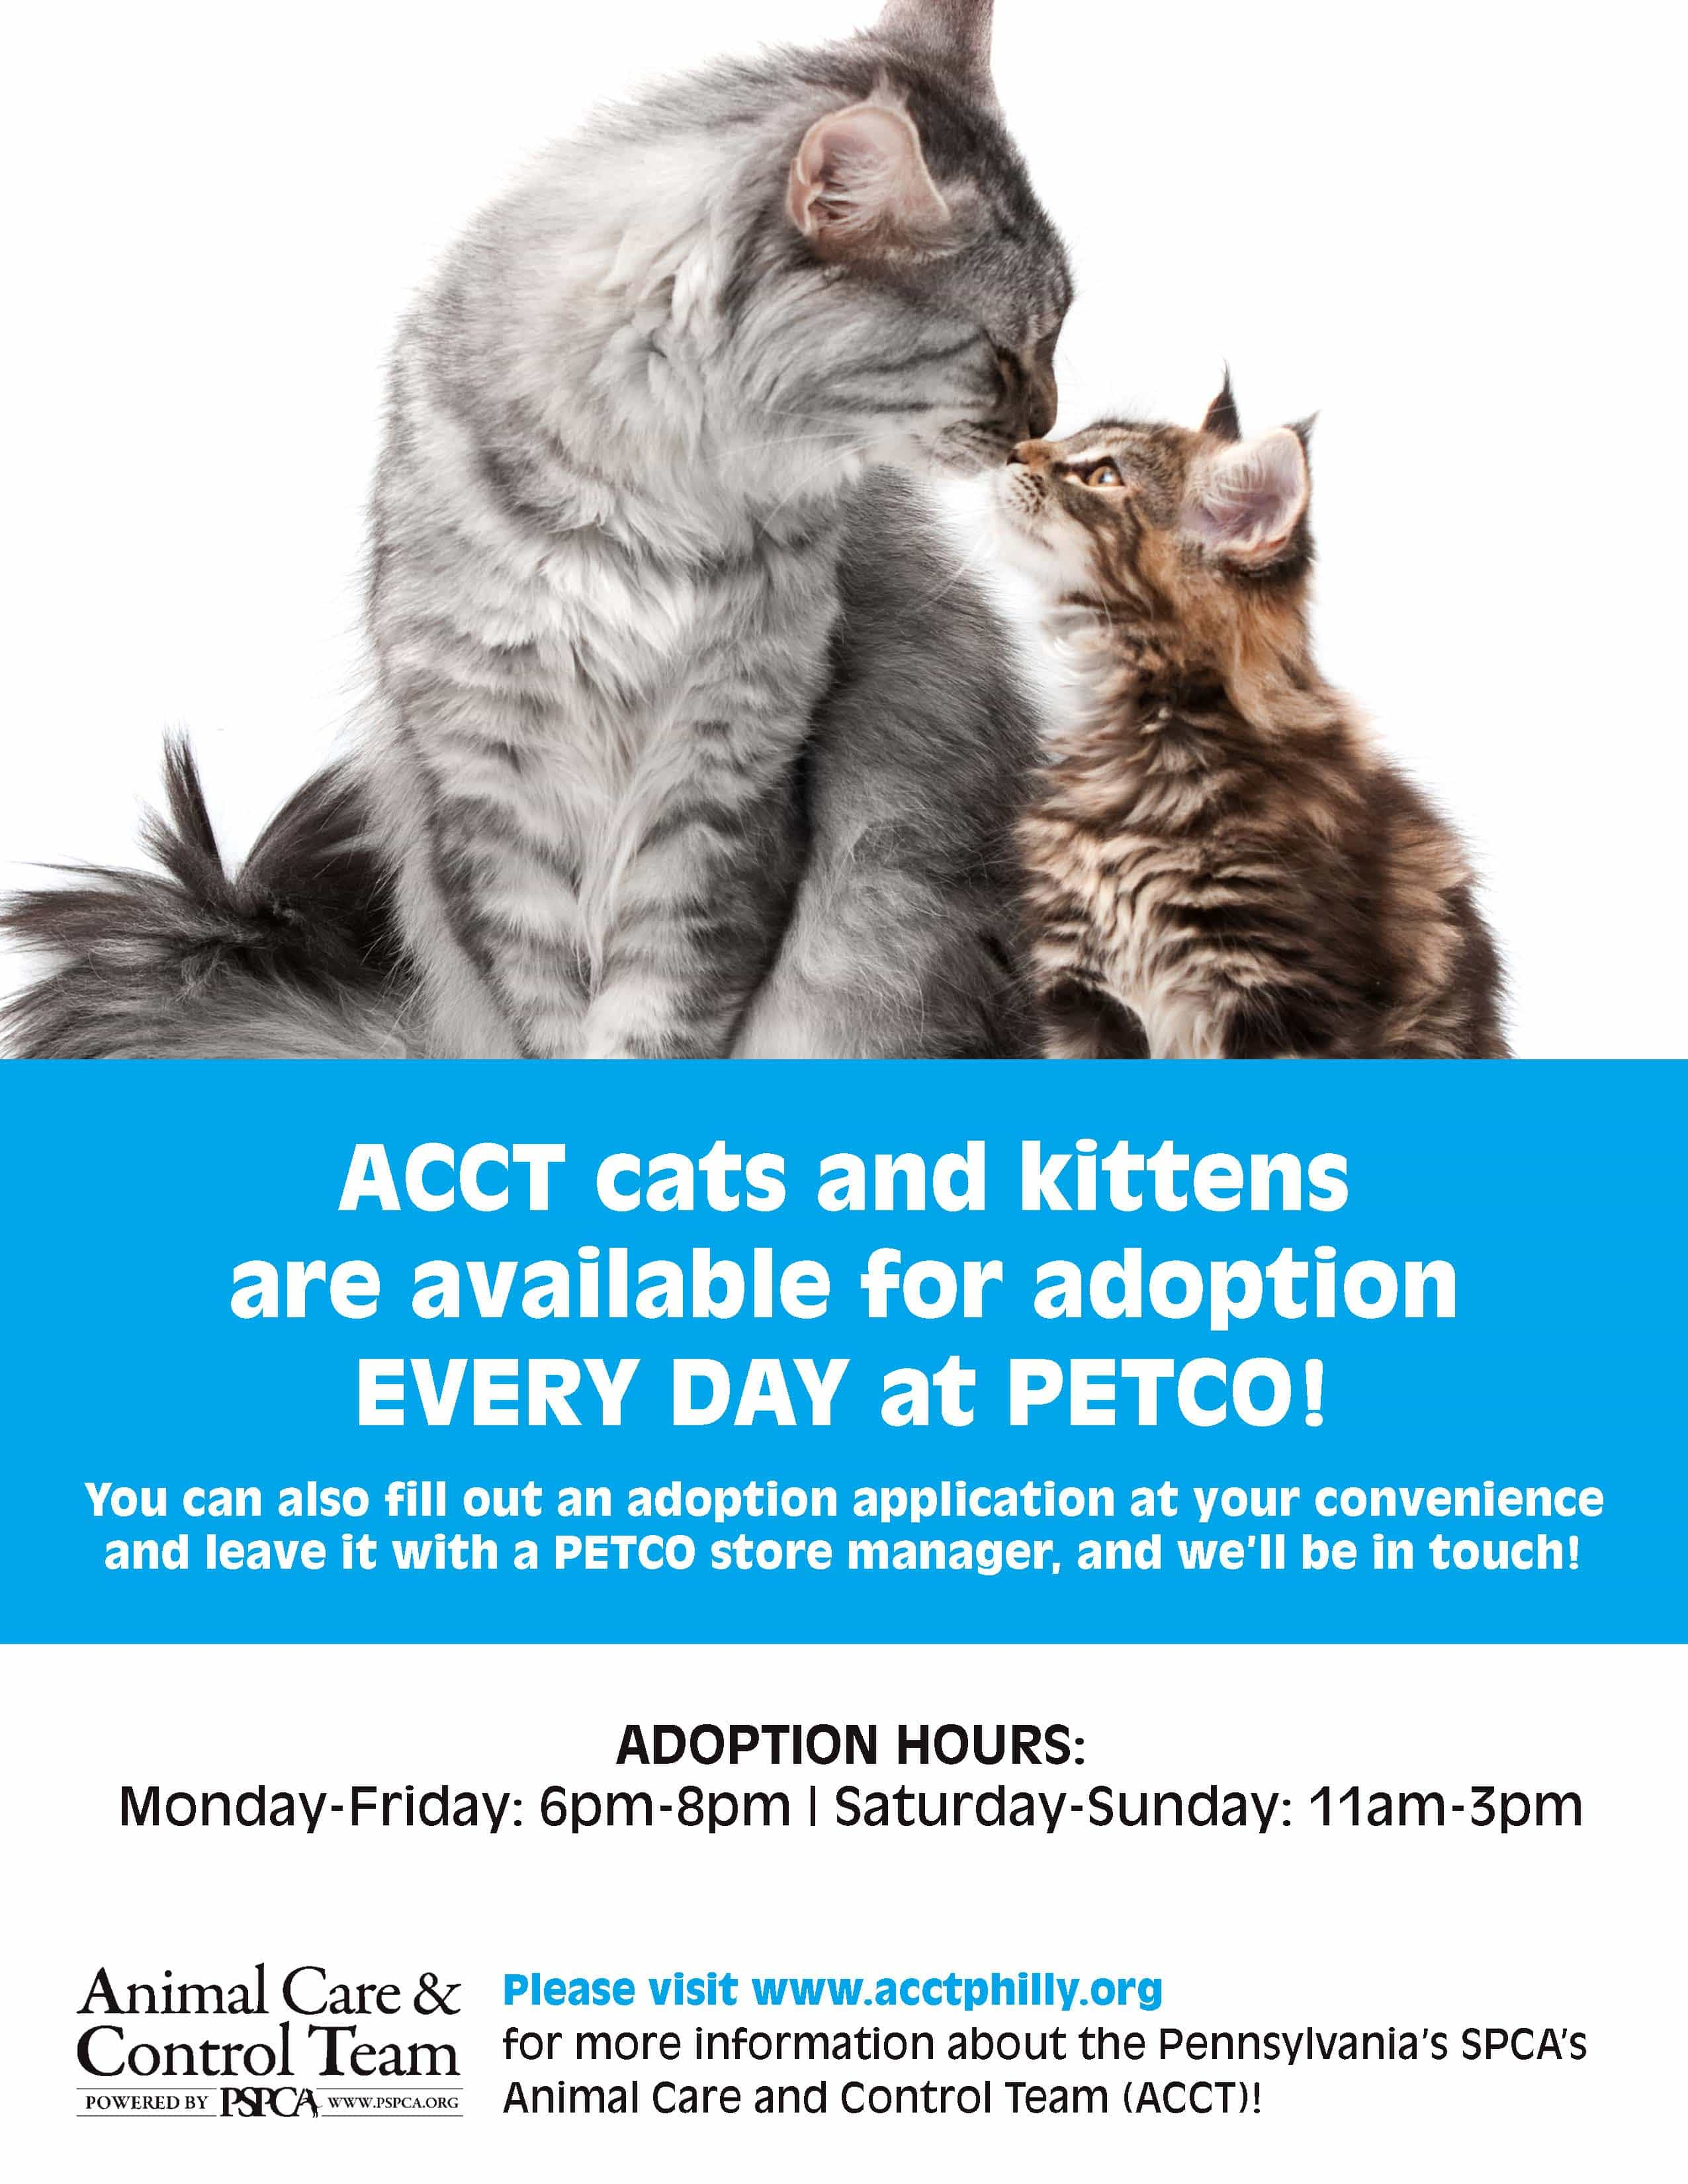 ACCT Begins Cat Adoptions at New PETCO in Andorra THIS Weekend